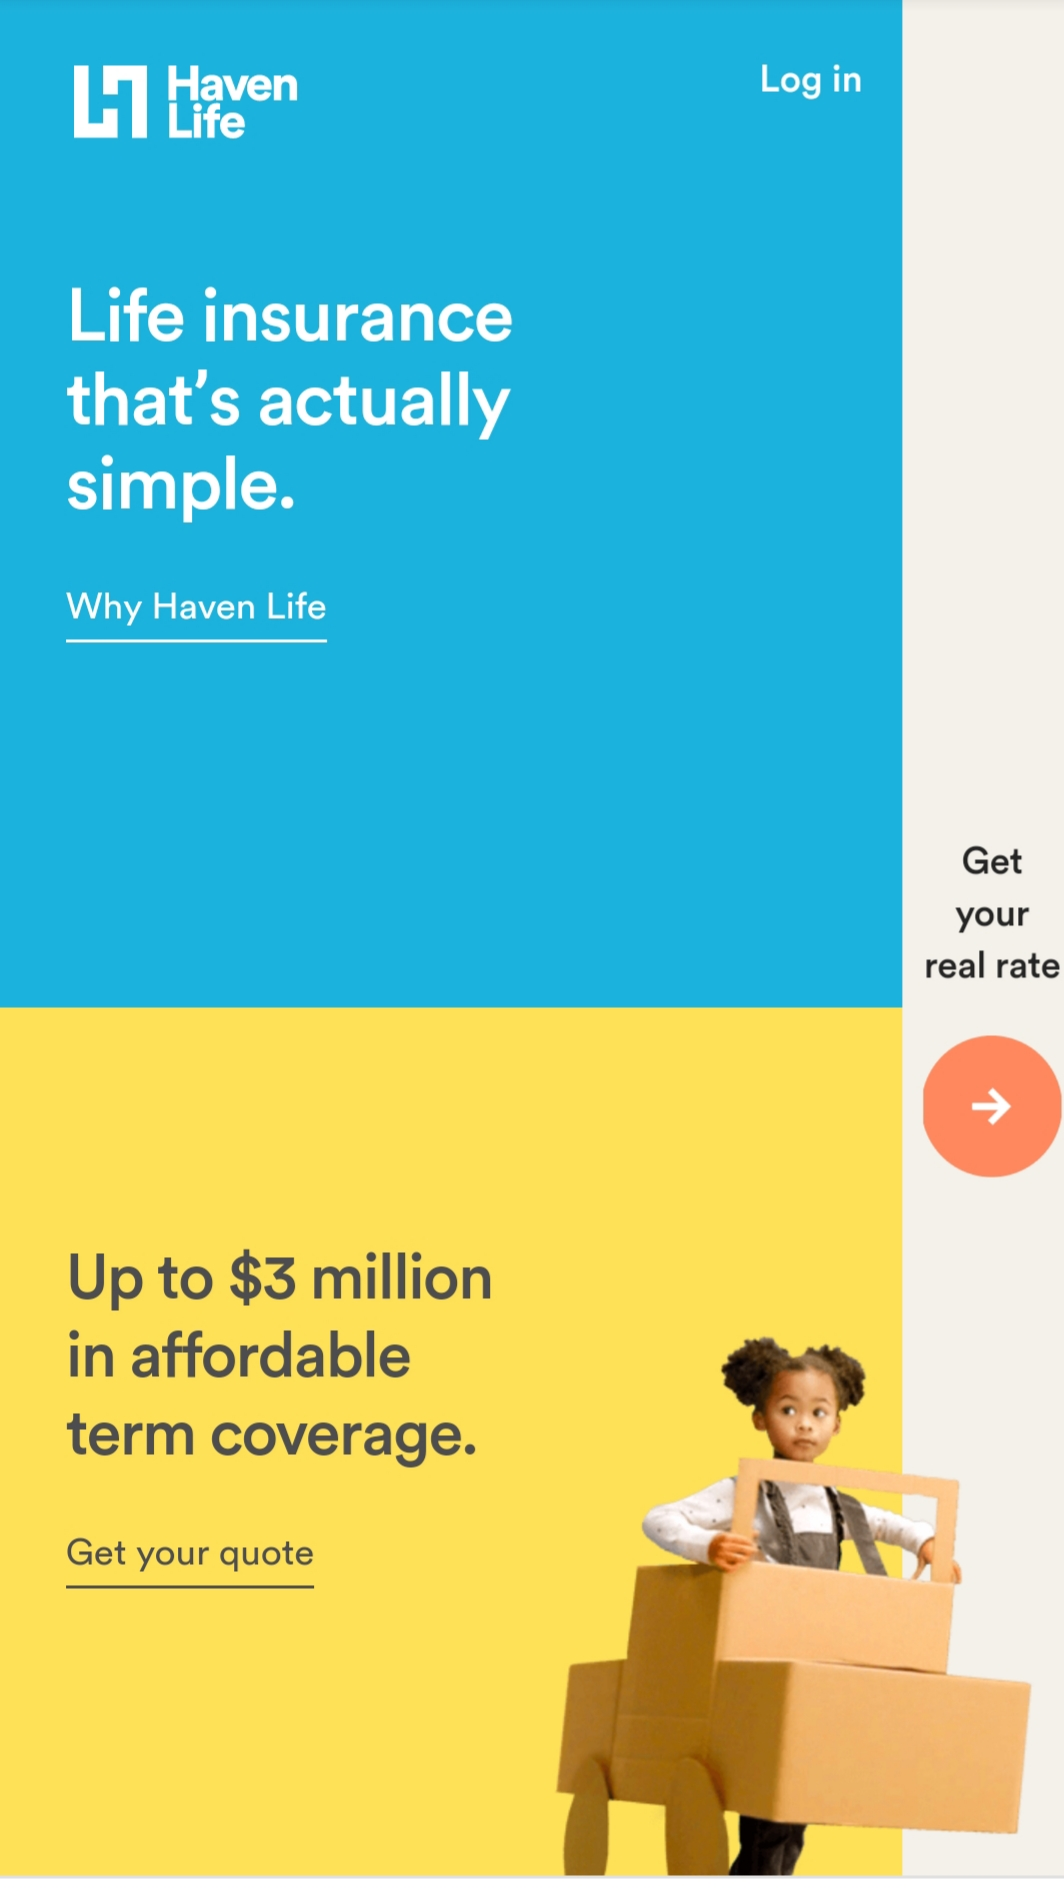 Haven Life mobile site